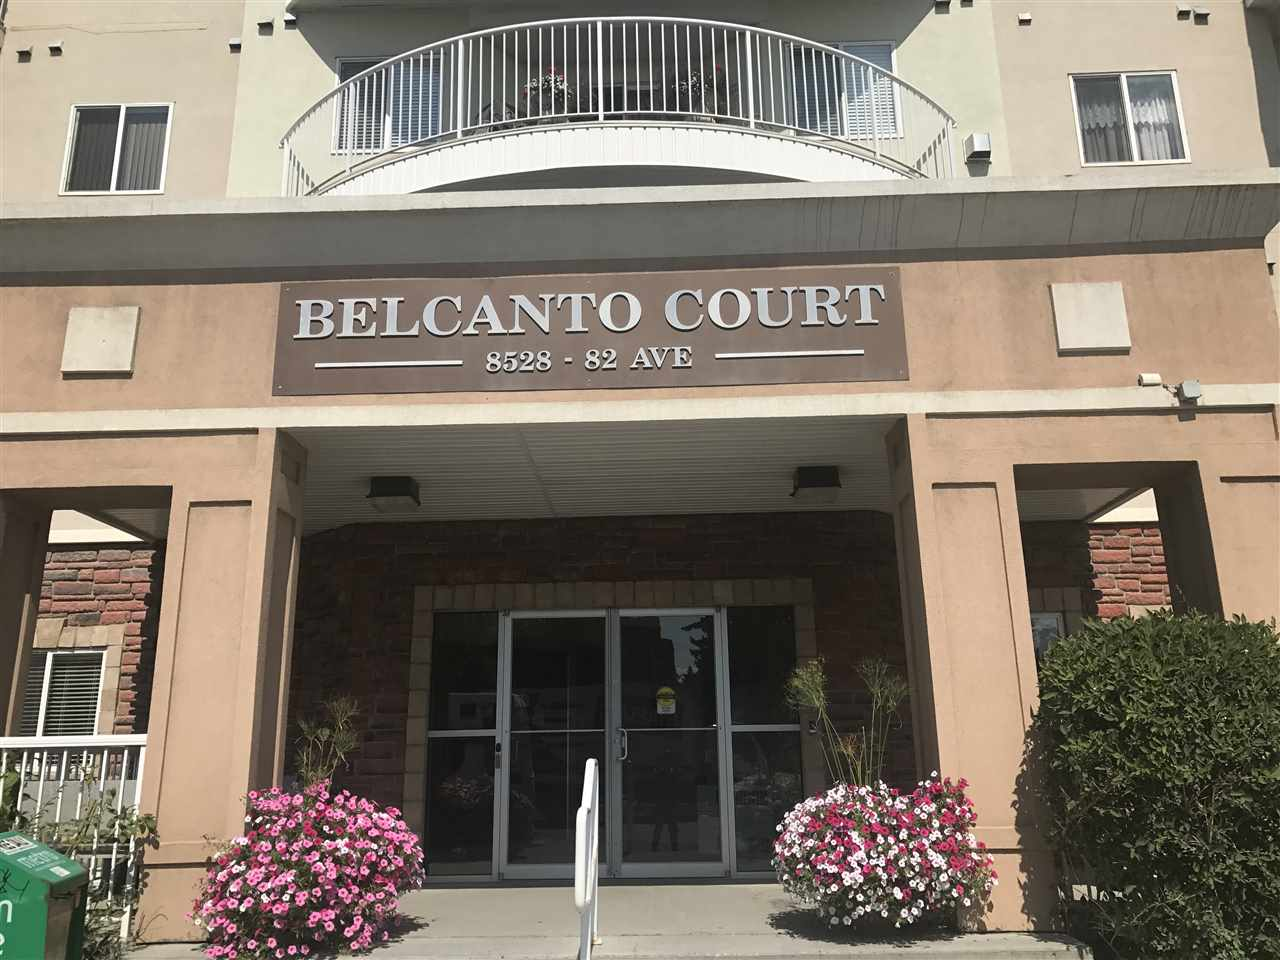 Welcome to Belcanto Court! This (45+) building is perfectly situated steps away from Bonnie Down shopping centre with a Safeway, and tons of shopping. It is also located very central so it has commute to downtown, and all the shops along Whyte Ave. This unit is nice and spacious with 2 bedrooms, 2 bathrooms, a large laundry room and a very open kitchen looking into your inviting living room with a gas fireplace. The large patio is perfect for anyone that loves to garden. This unit does have air-conditioning, and the building features a social room and a car wash!